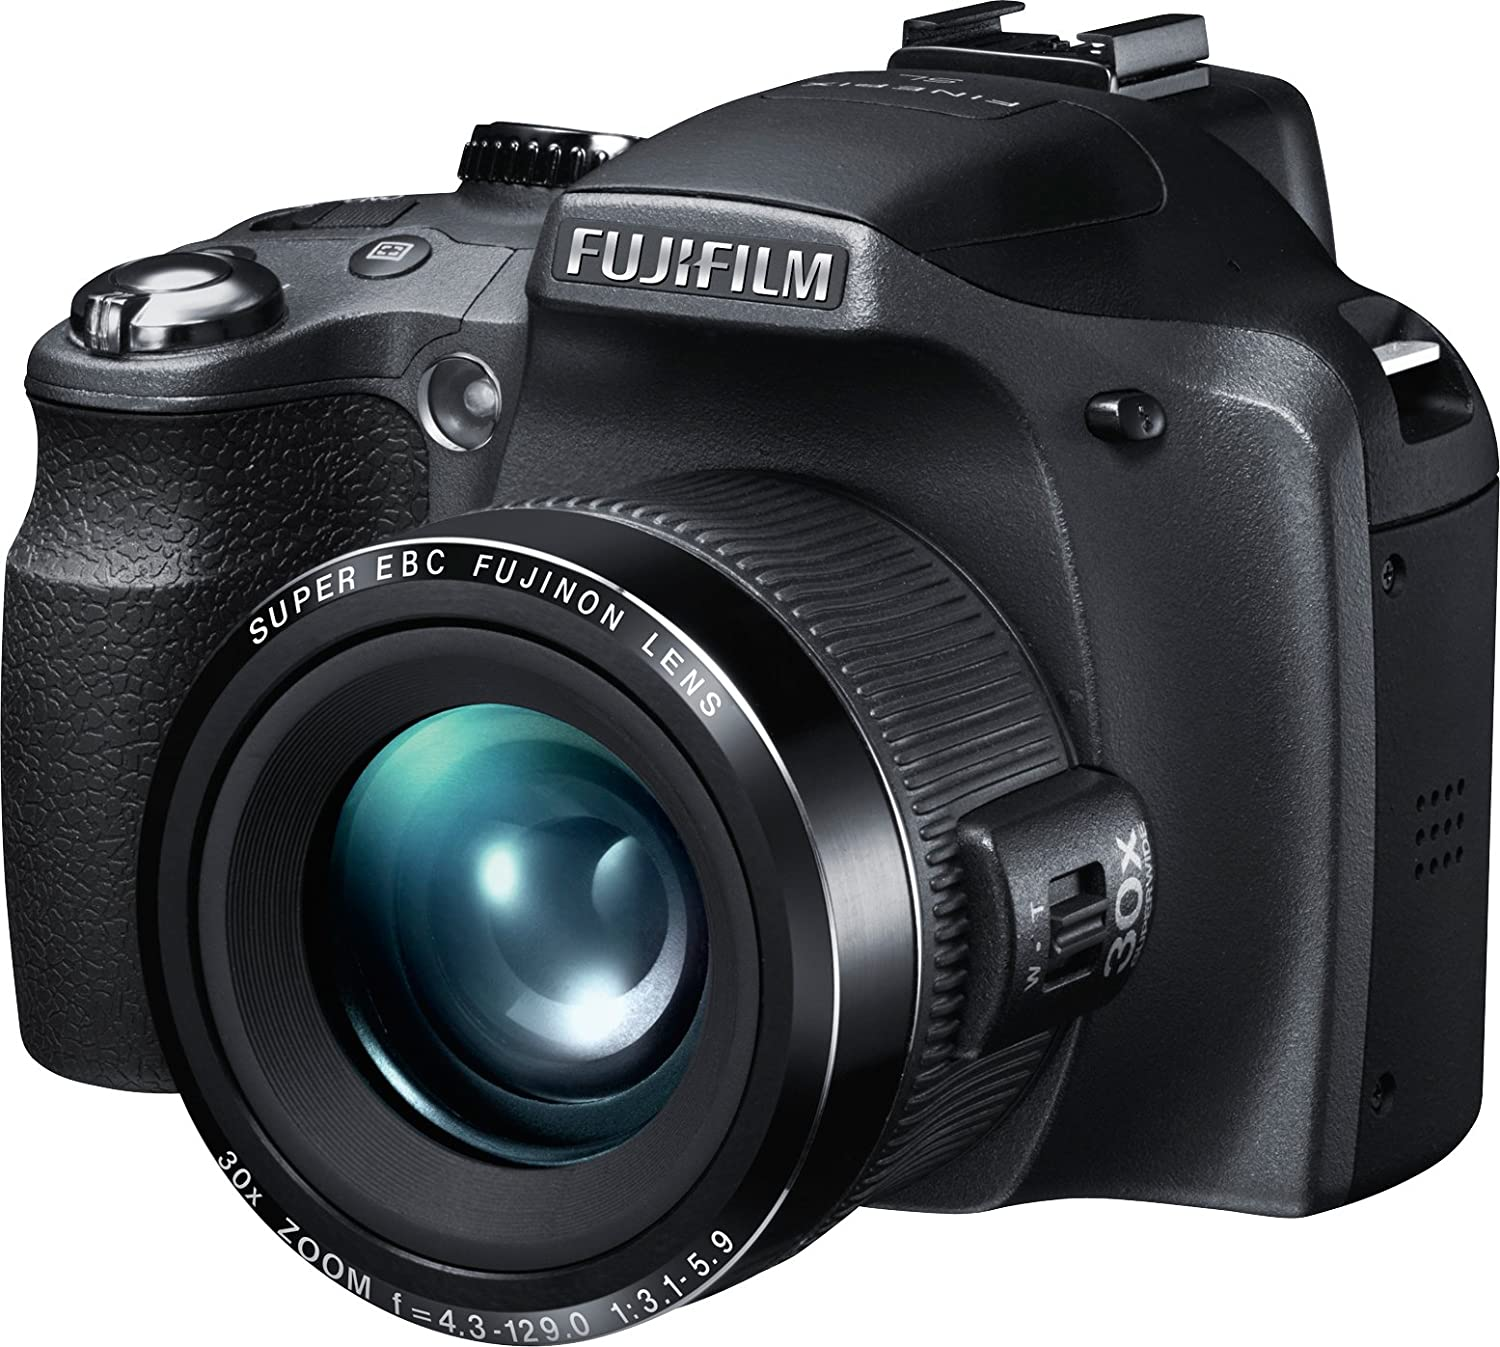 Amazon.com : Fujifilm FinePix SL300 14 MP Digital Camera with 30x Optical  Zoom (Black) (OLD MODEL) : Point And Shoot Digital Cameras : Camera & Photo